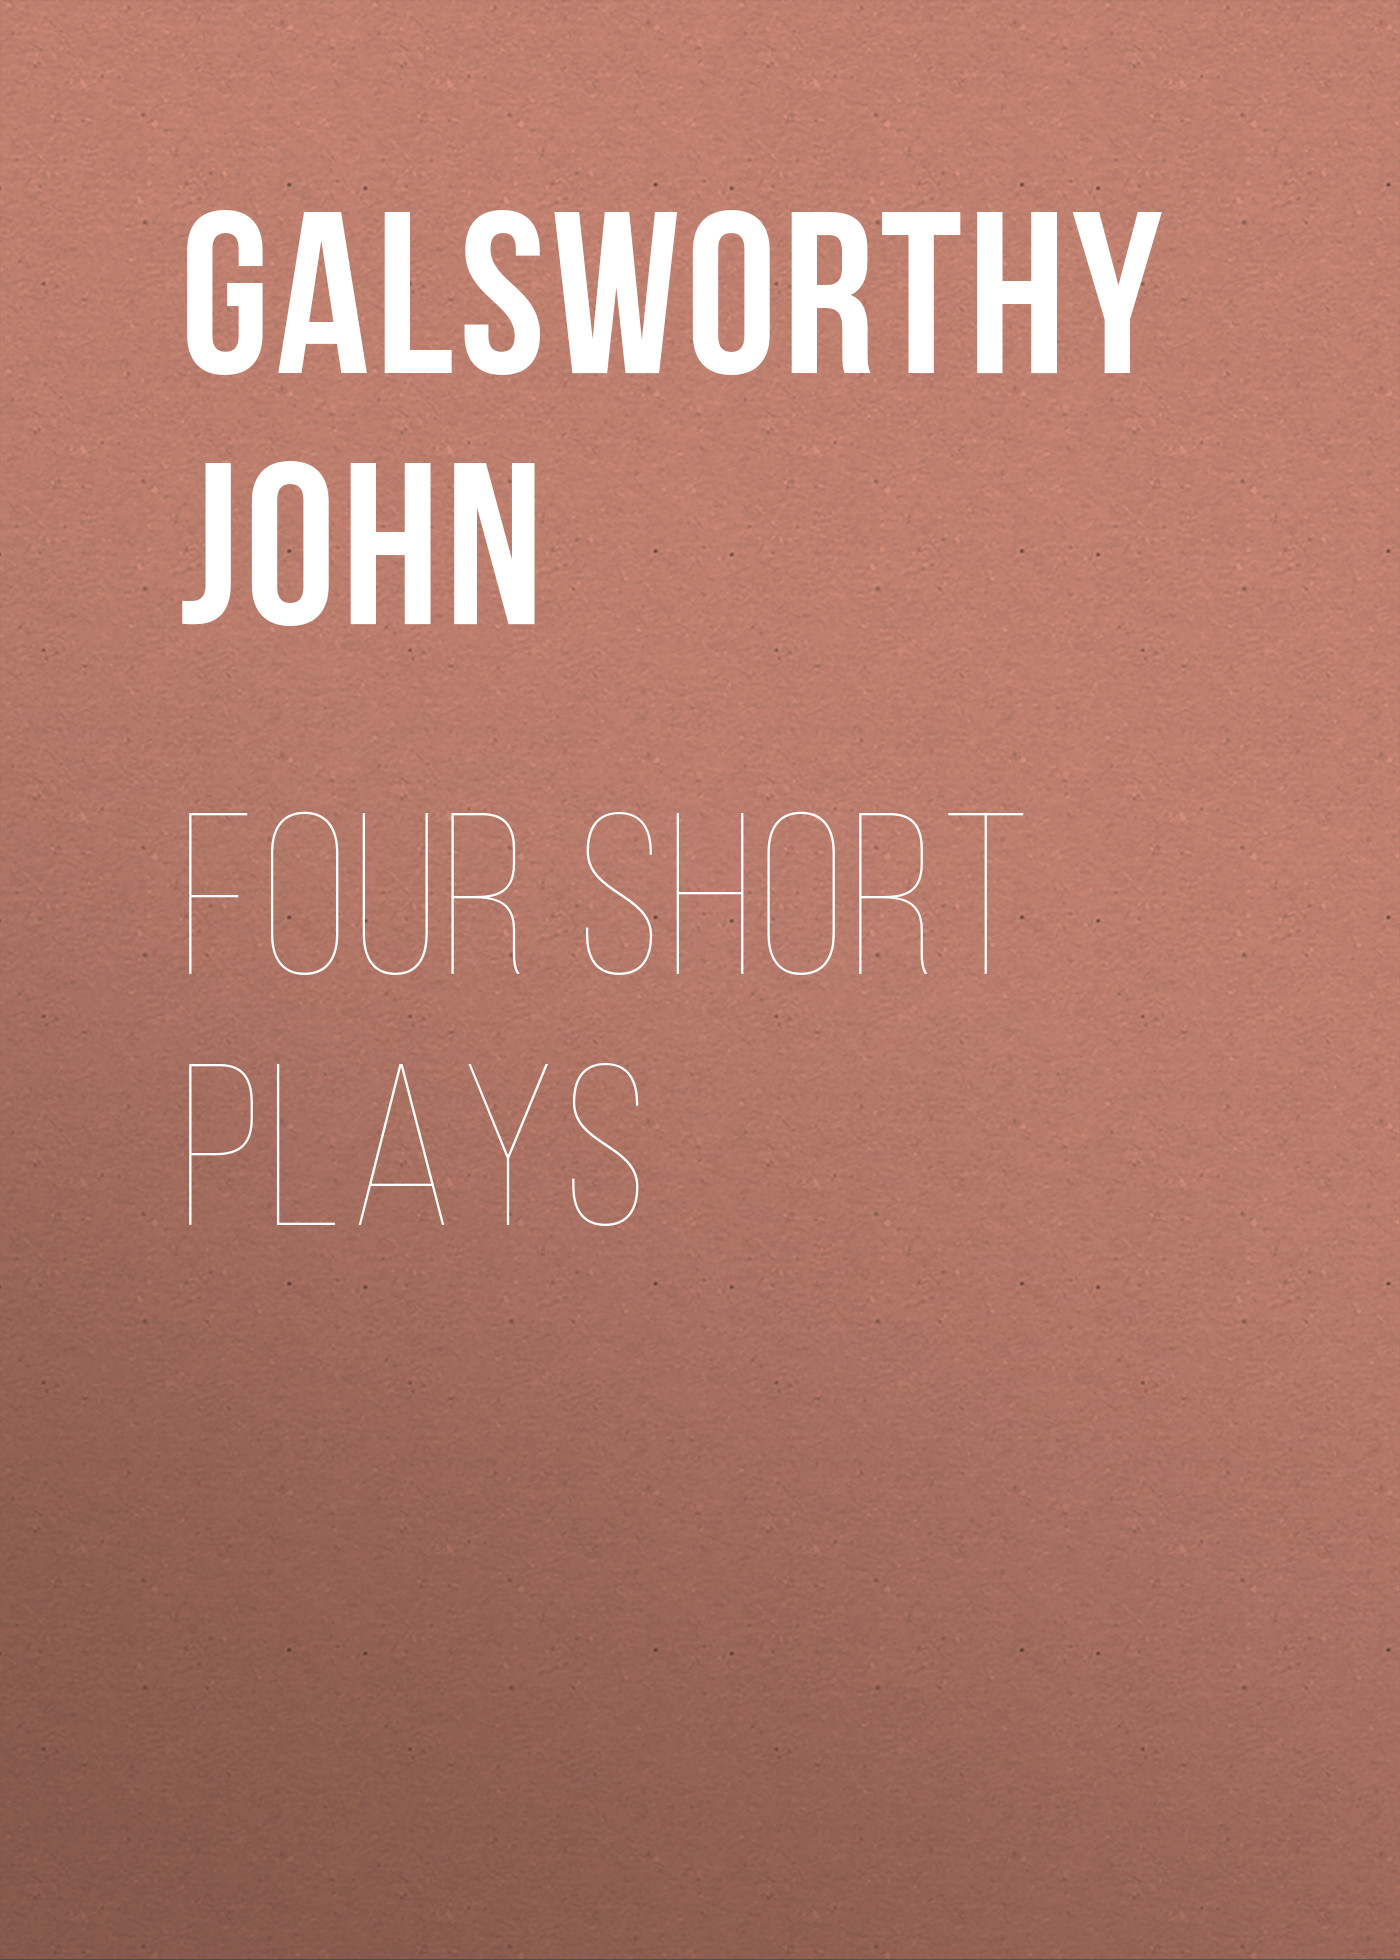 Galsworthy John Four Short Plays landyachts short deck four wheel skateboard